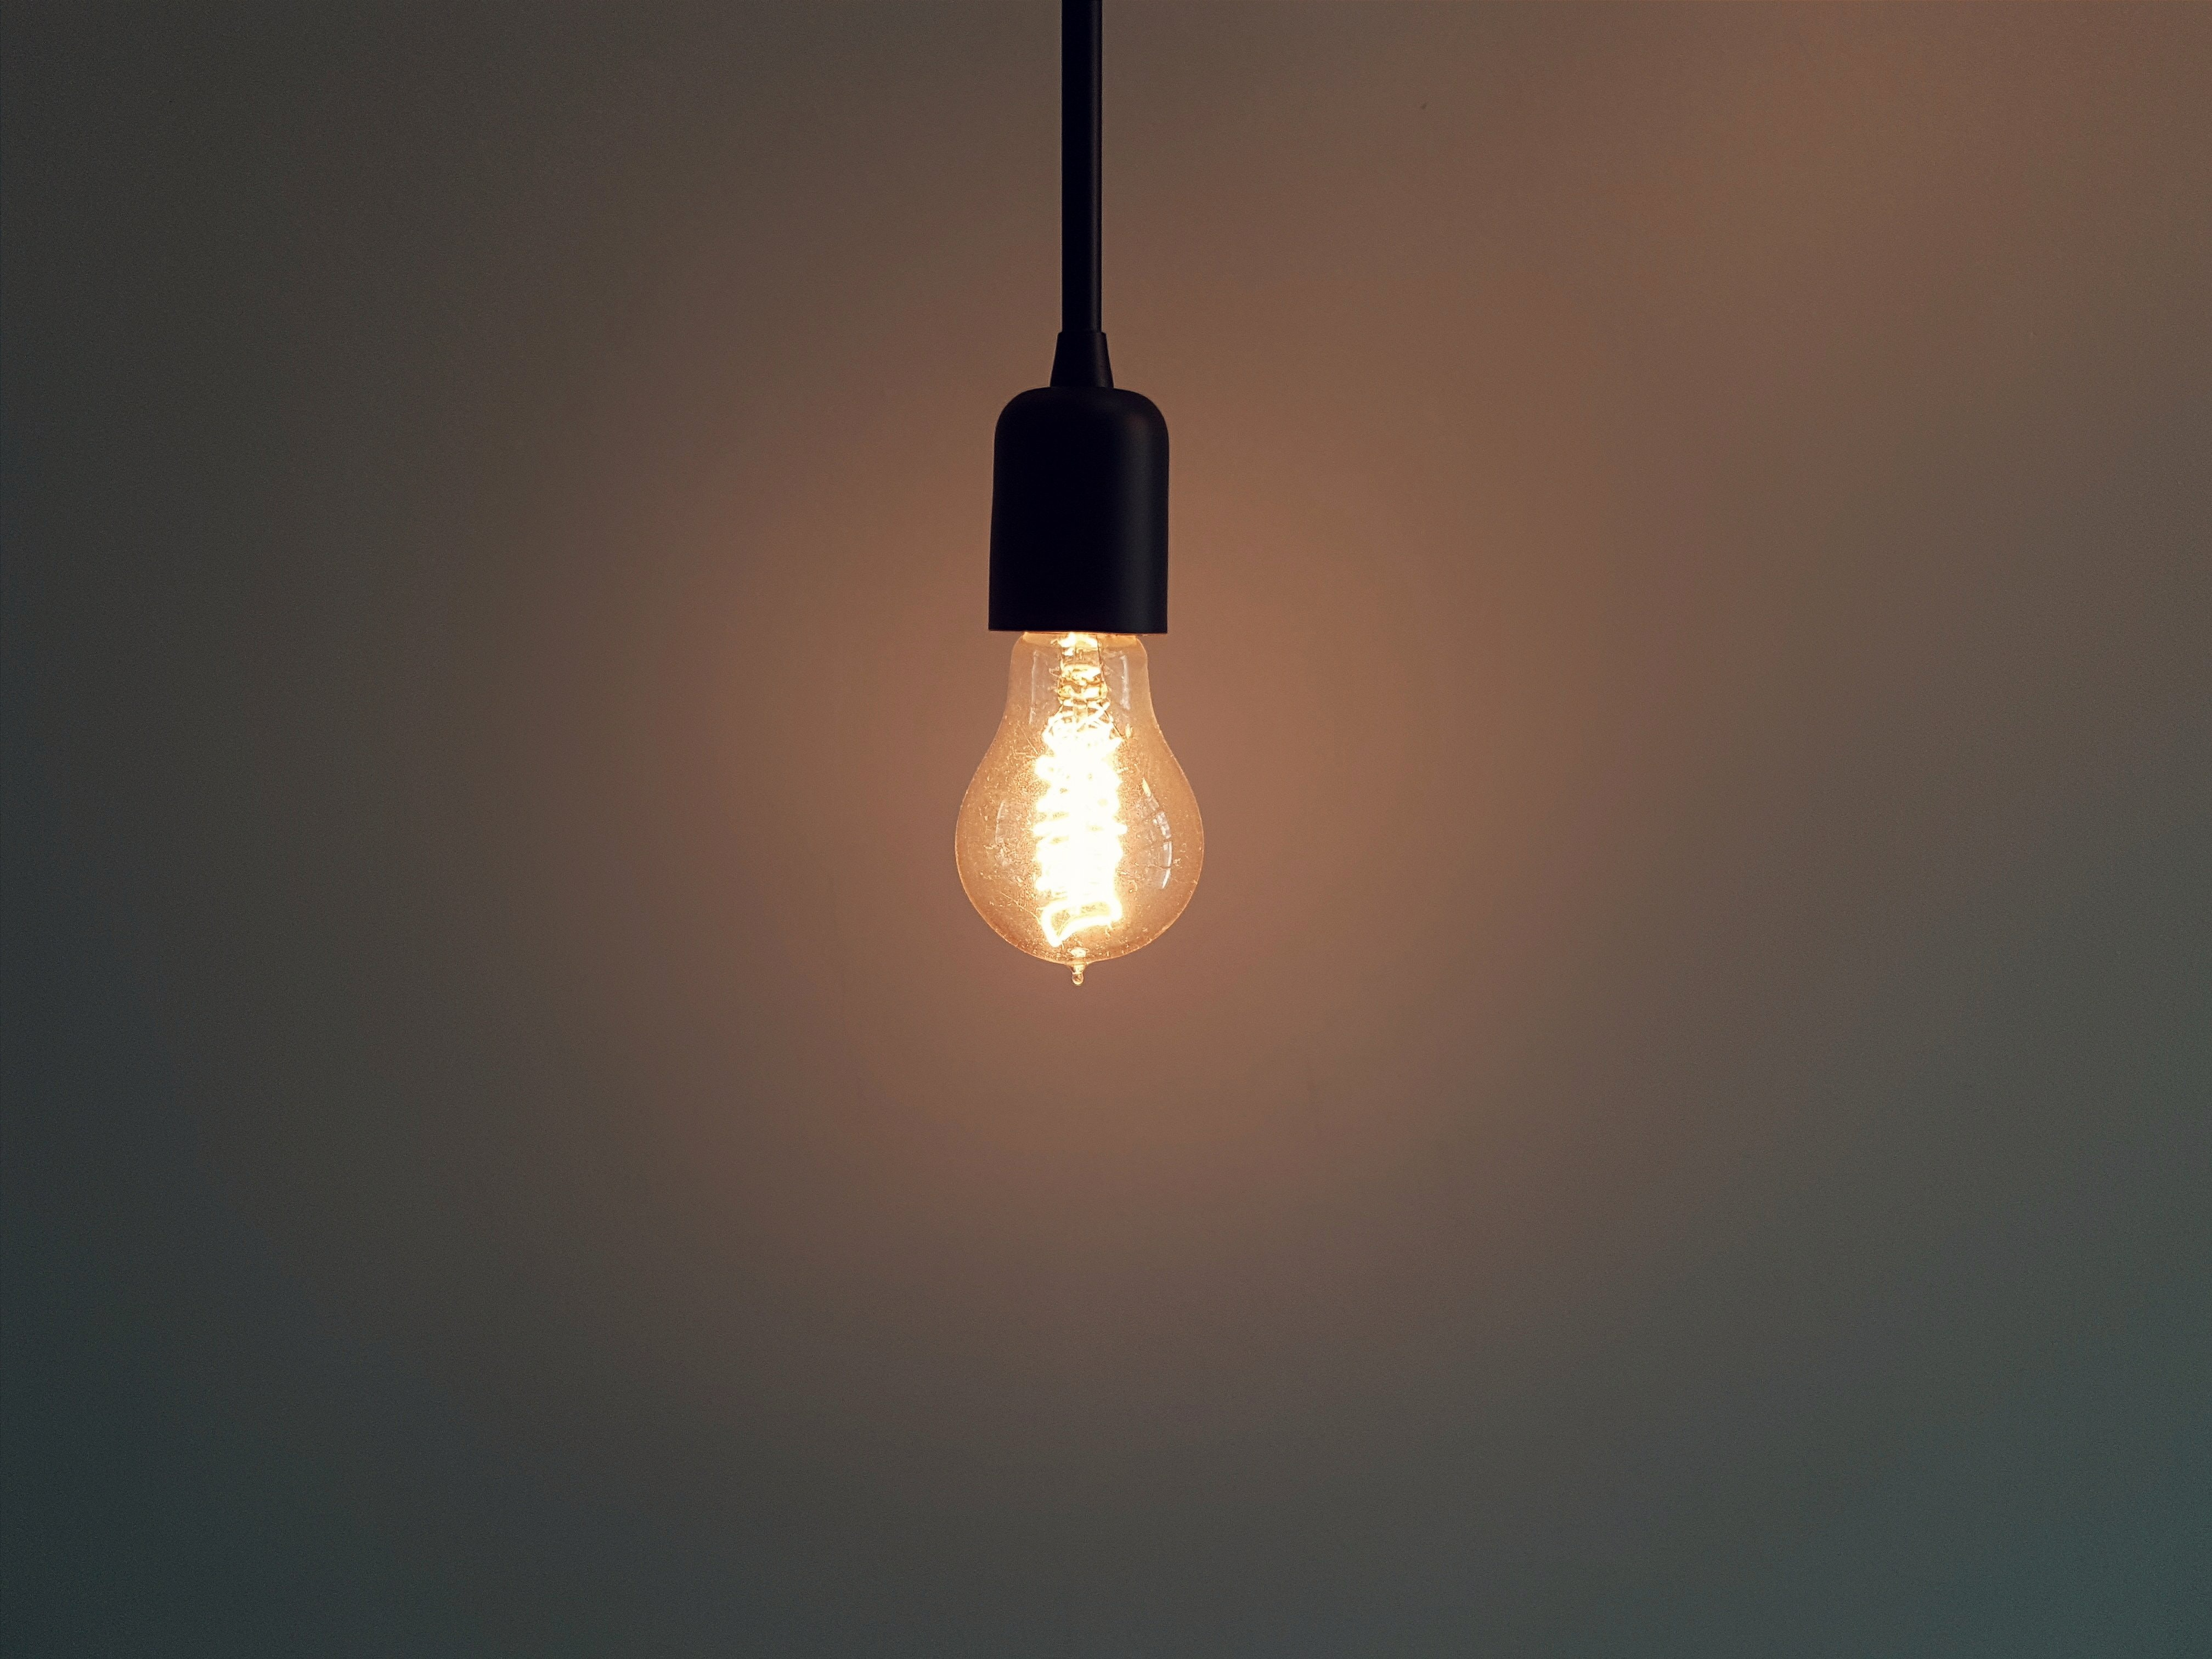 What makes an idea interesting?